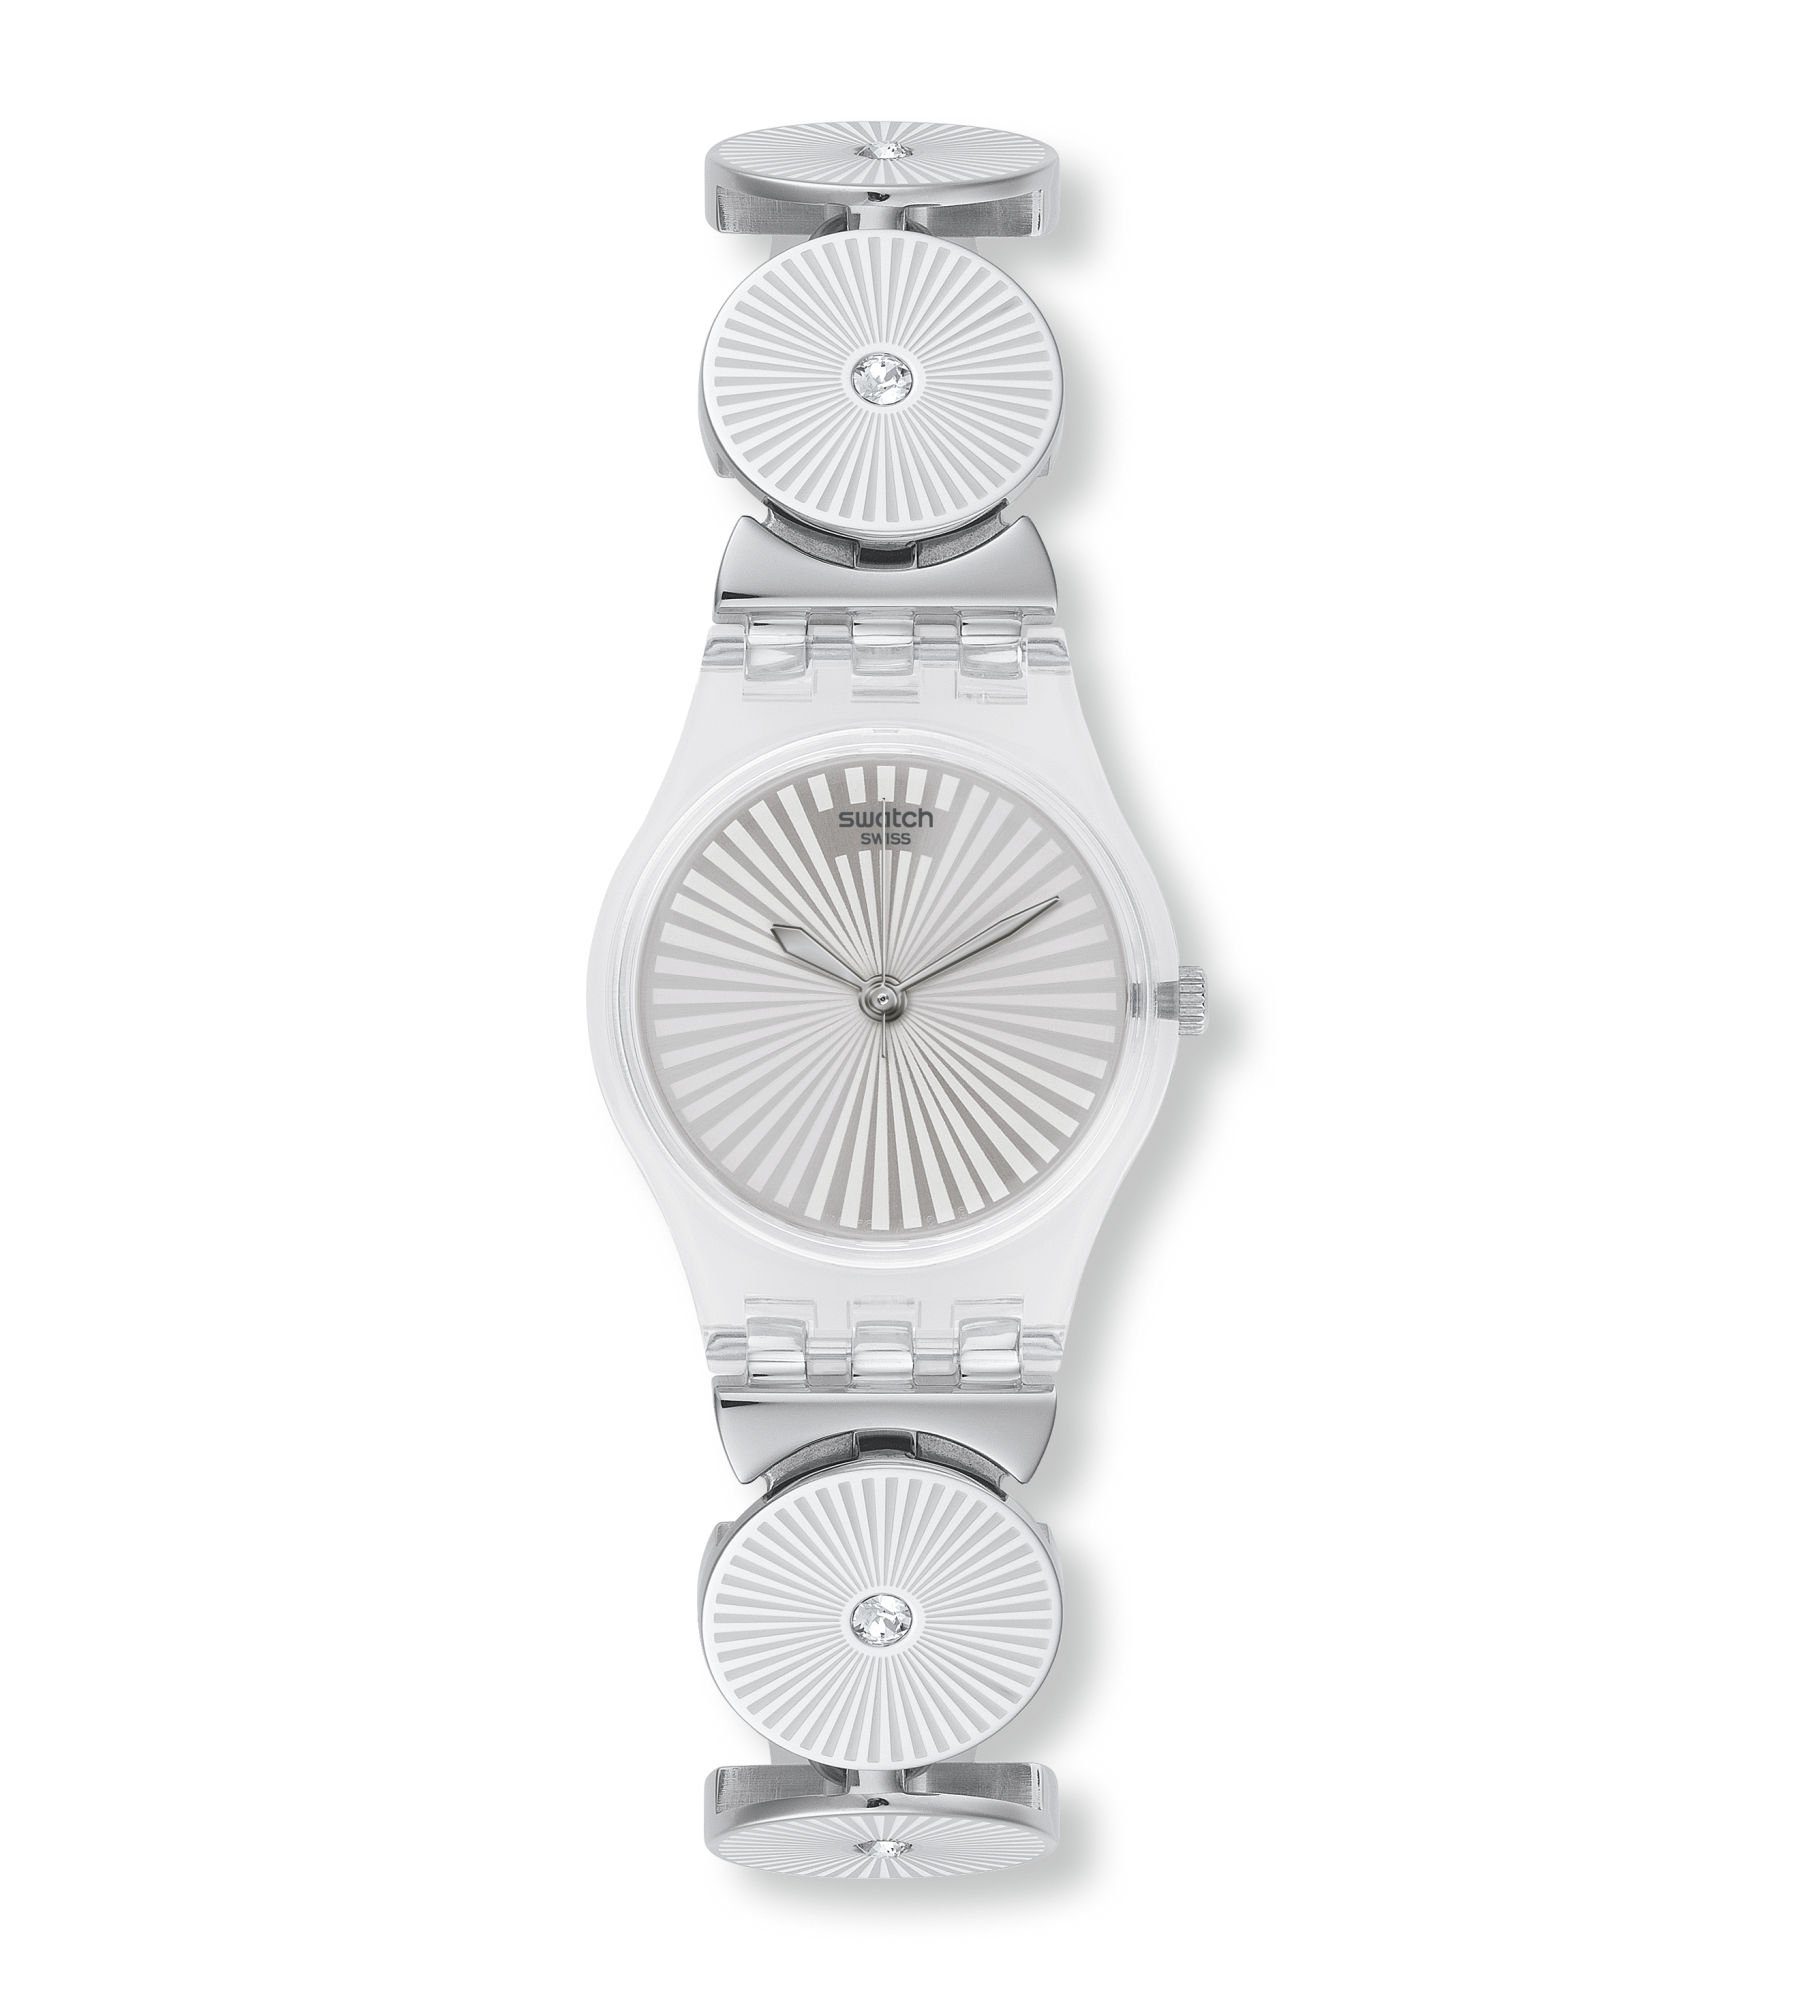 Genskie_chasy_Swatch (32)